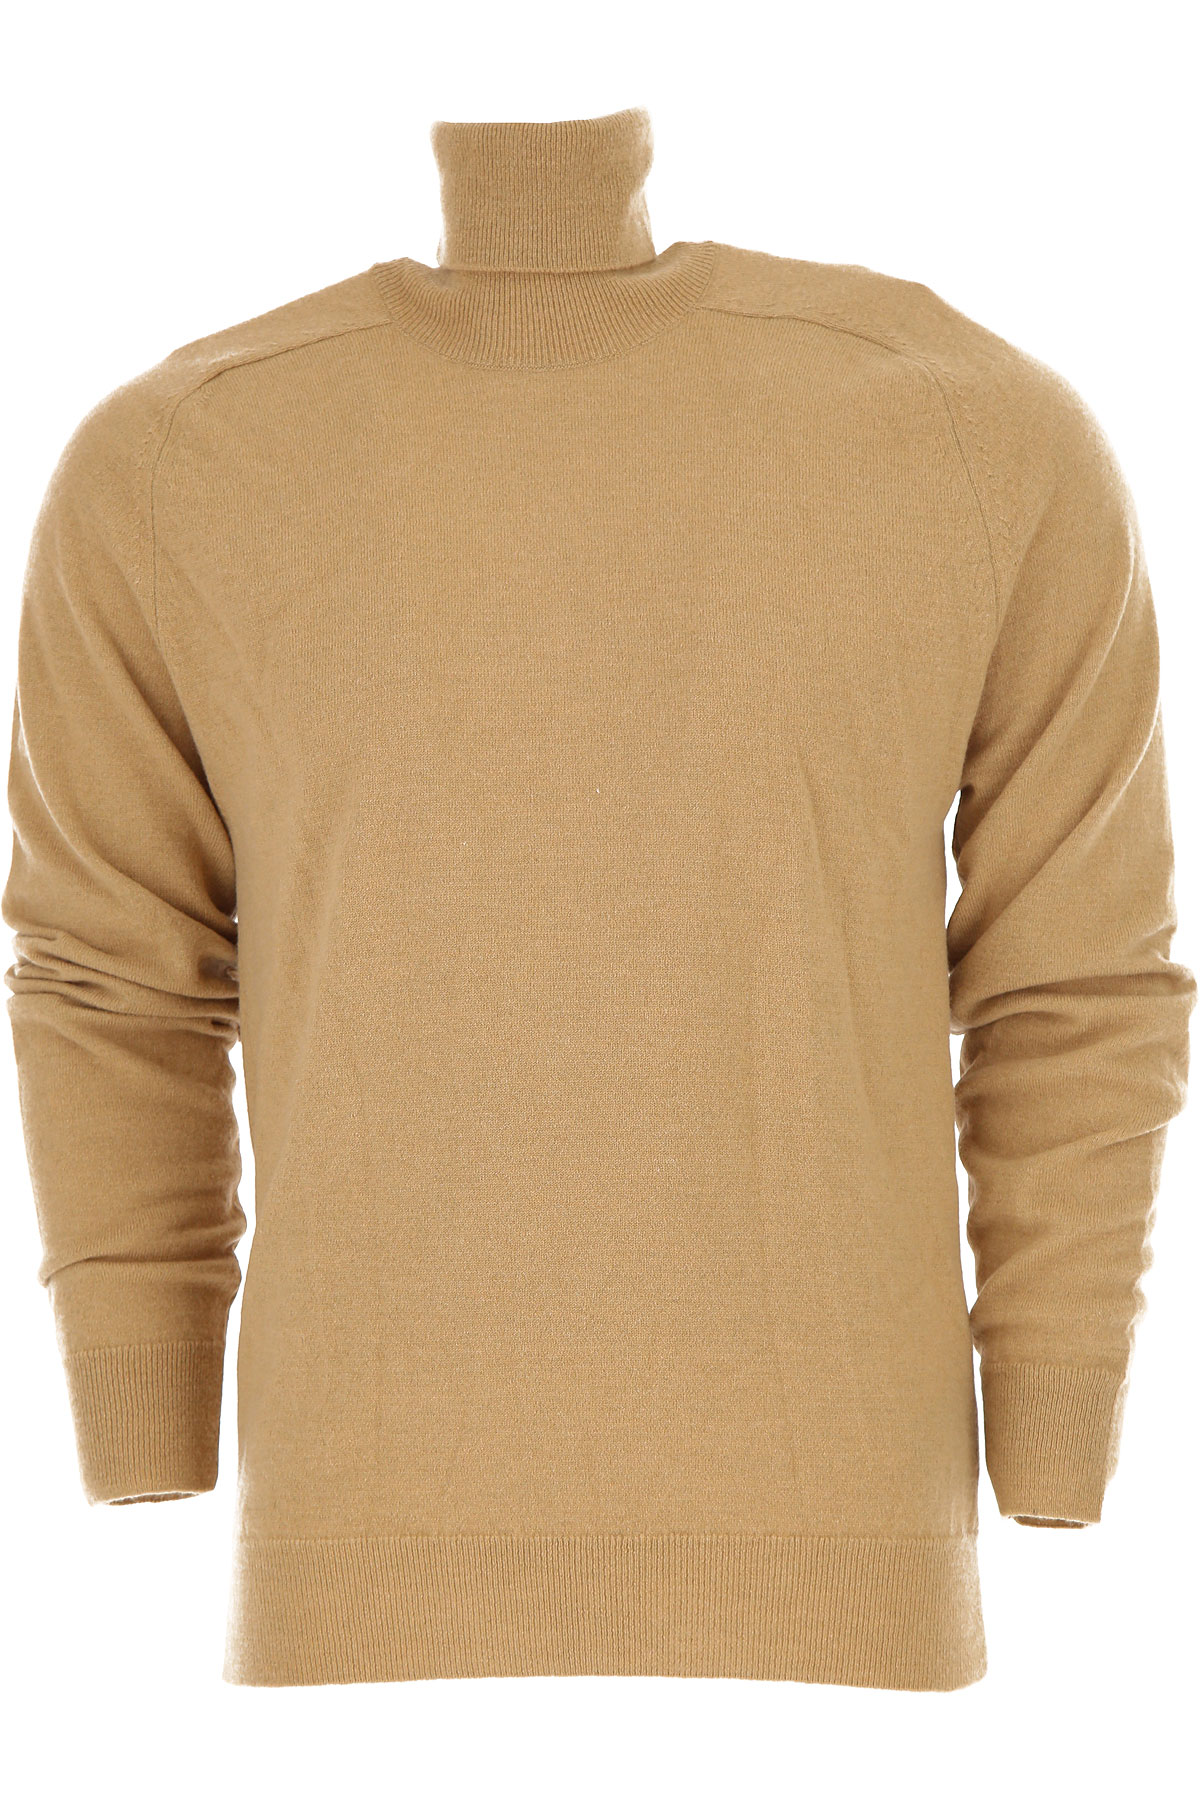 Image of Ami Sweater for Men Jumper, Beige, Extrafine Baby Merinos Wool, 2017, L M XL